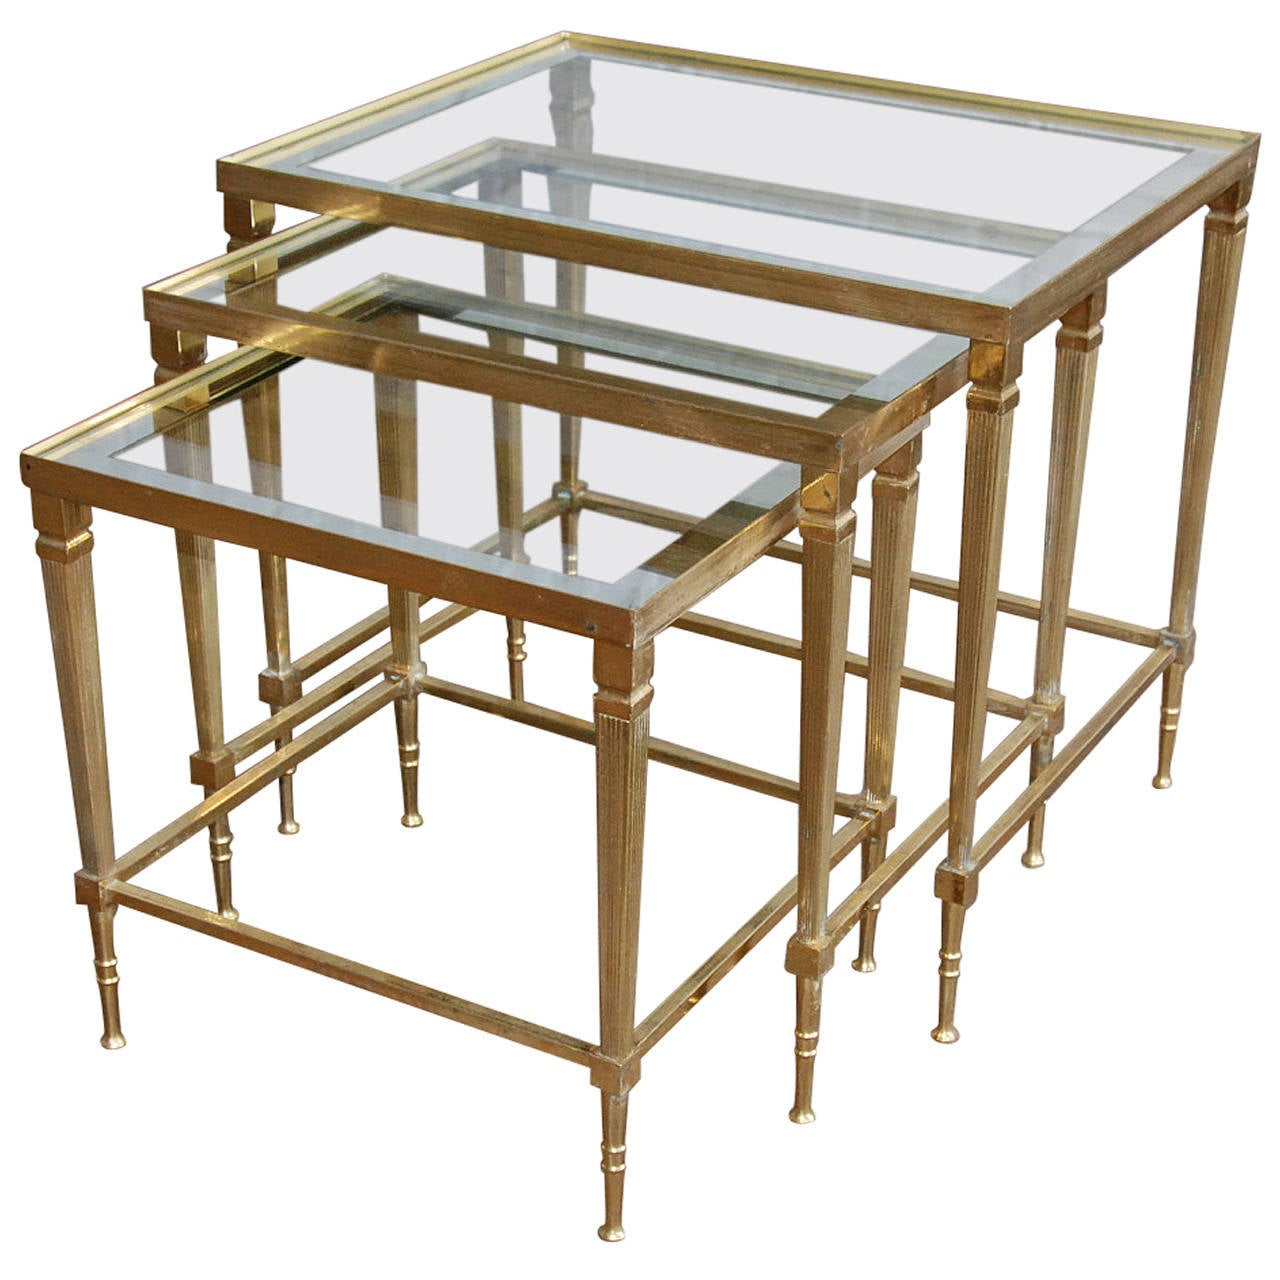 Italian brass and mirrored glass trio of nesting tables